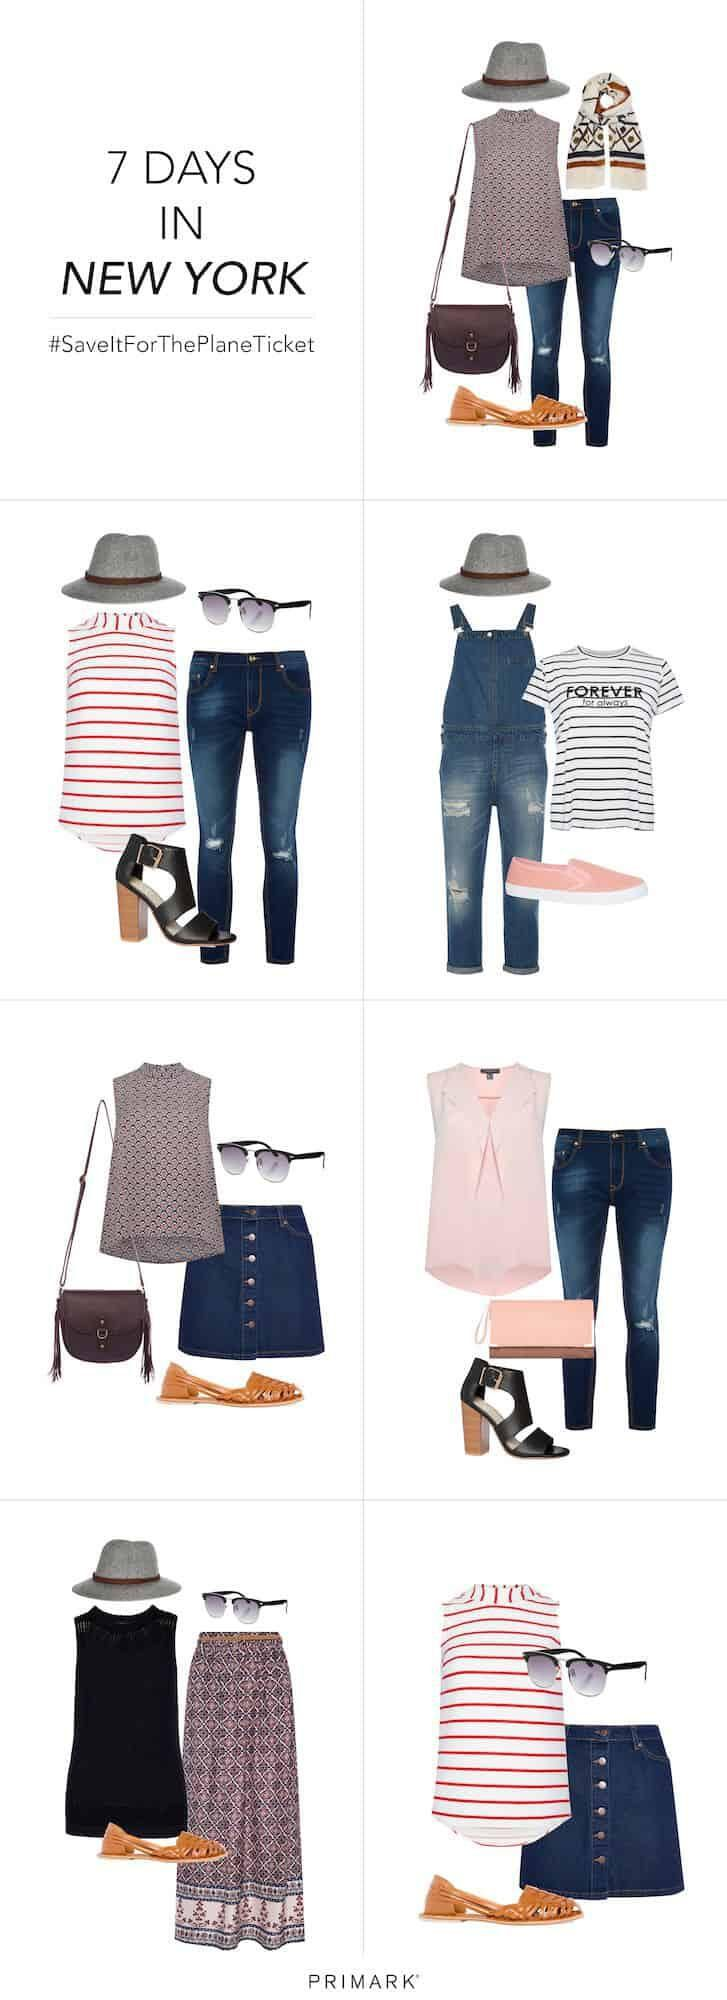 Summer vacations in New York 10 best outfits to wear